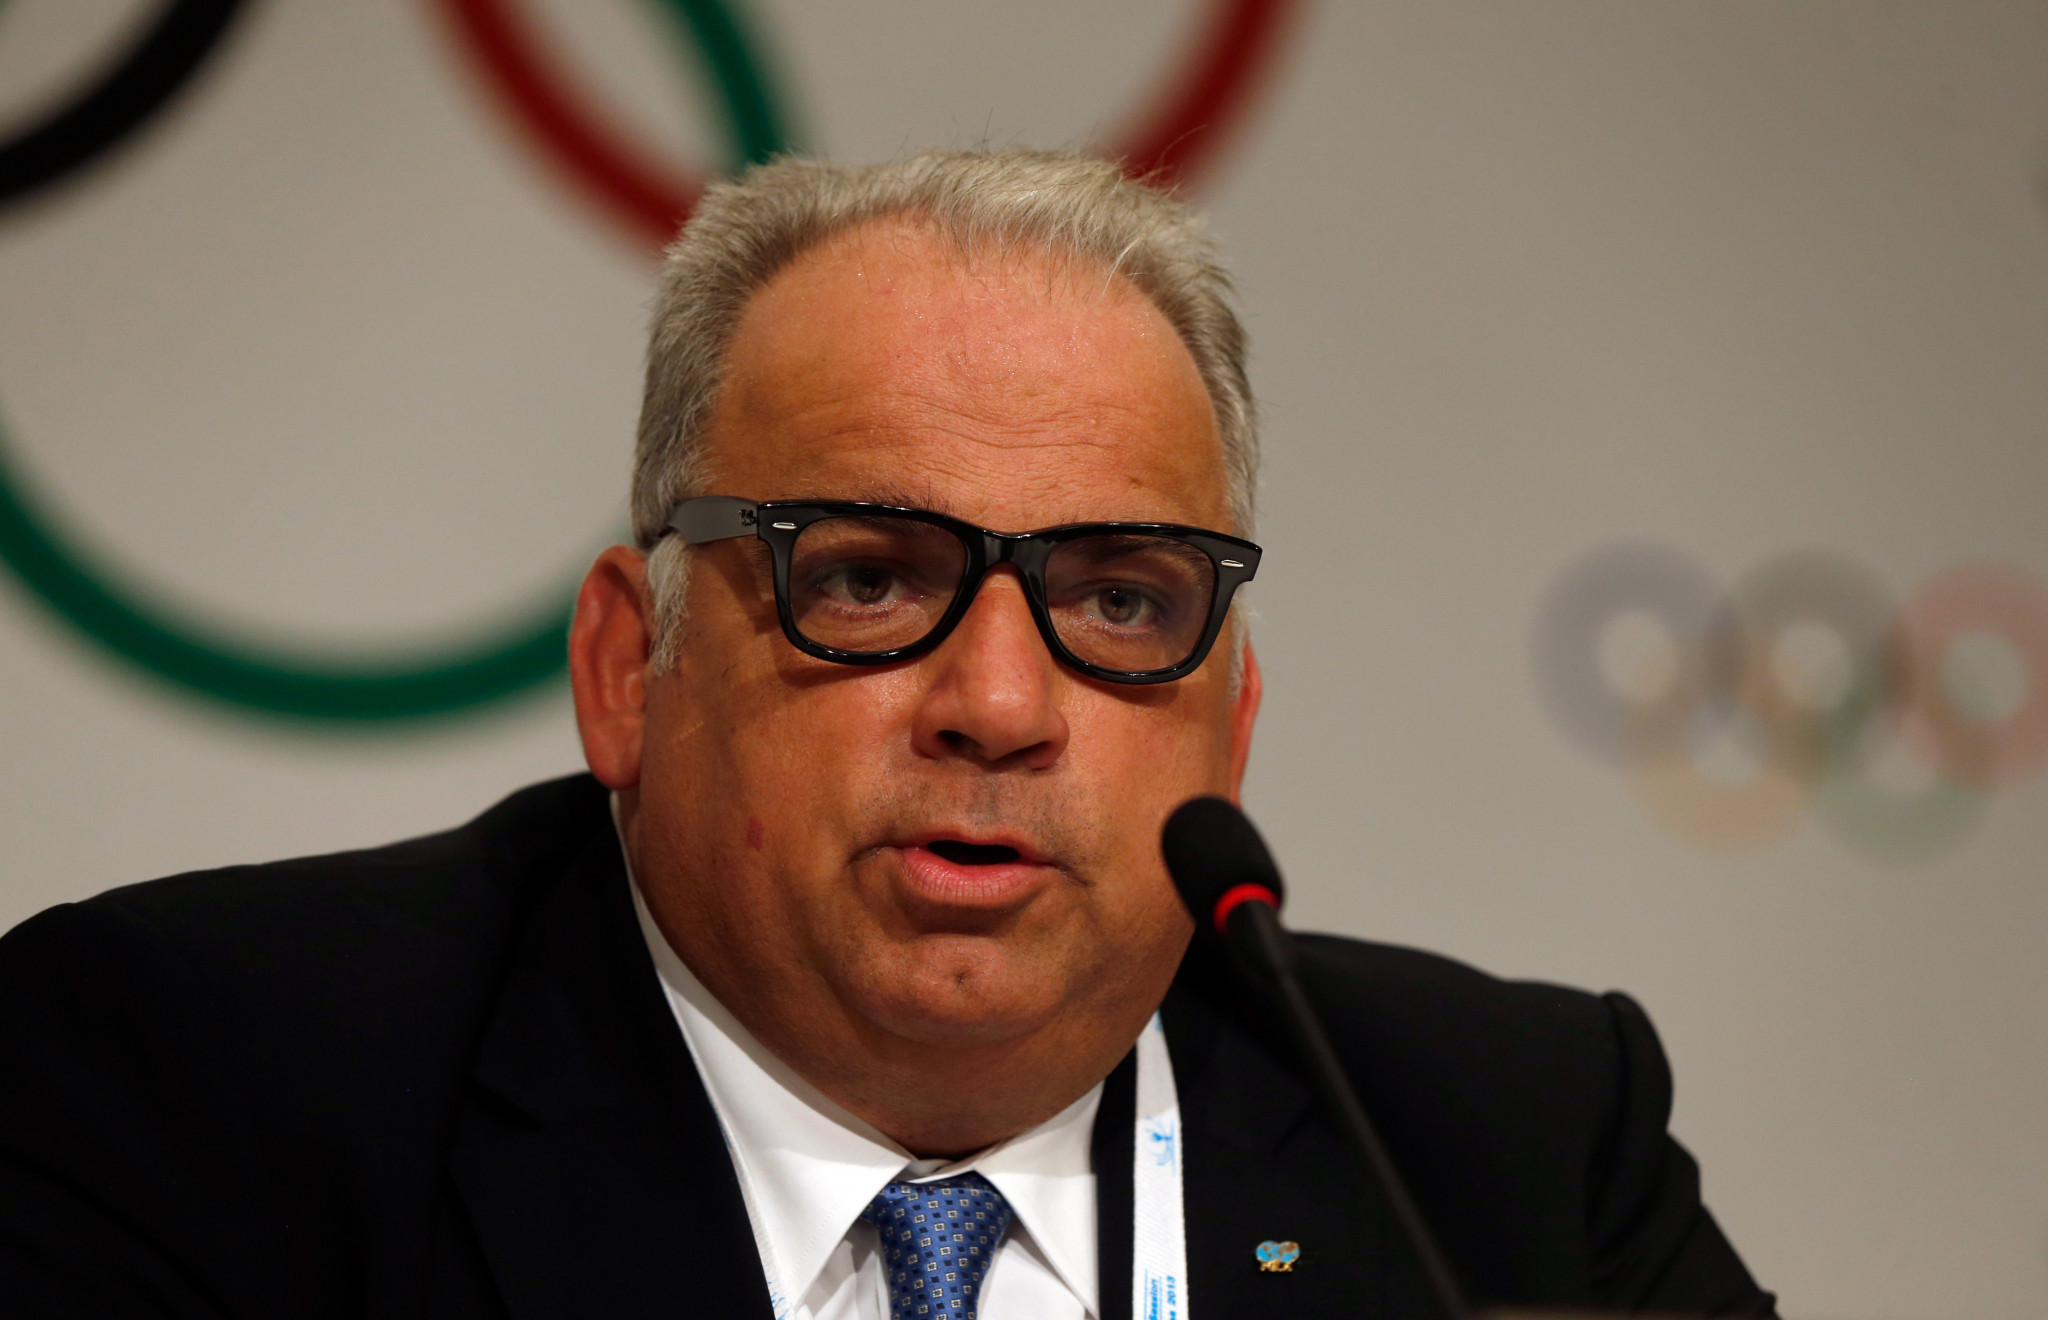 IOC Executive Board member Nenad Lalovic has backed calls for an investigation into Beckie Scott's bullying claims ©Getty Images